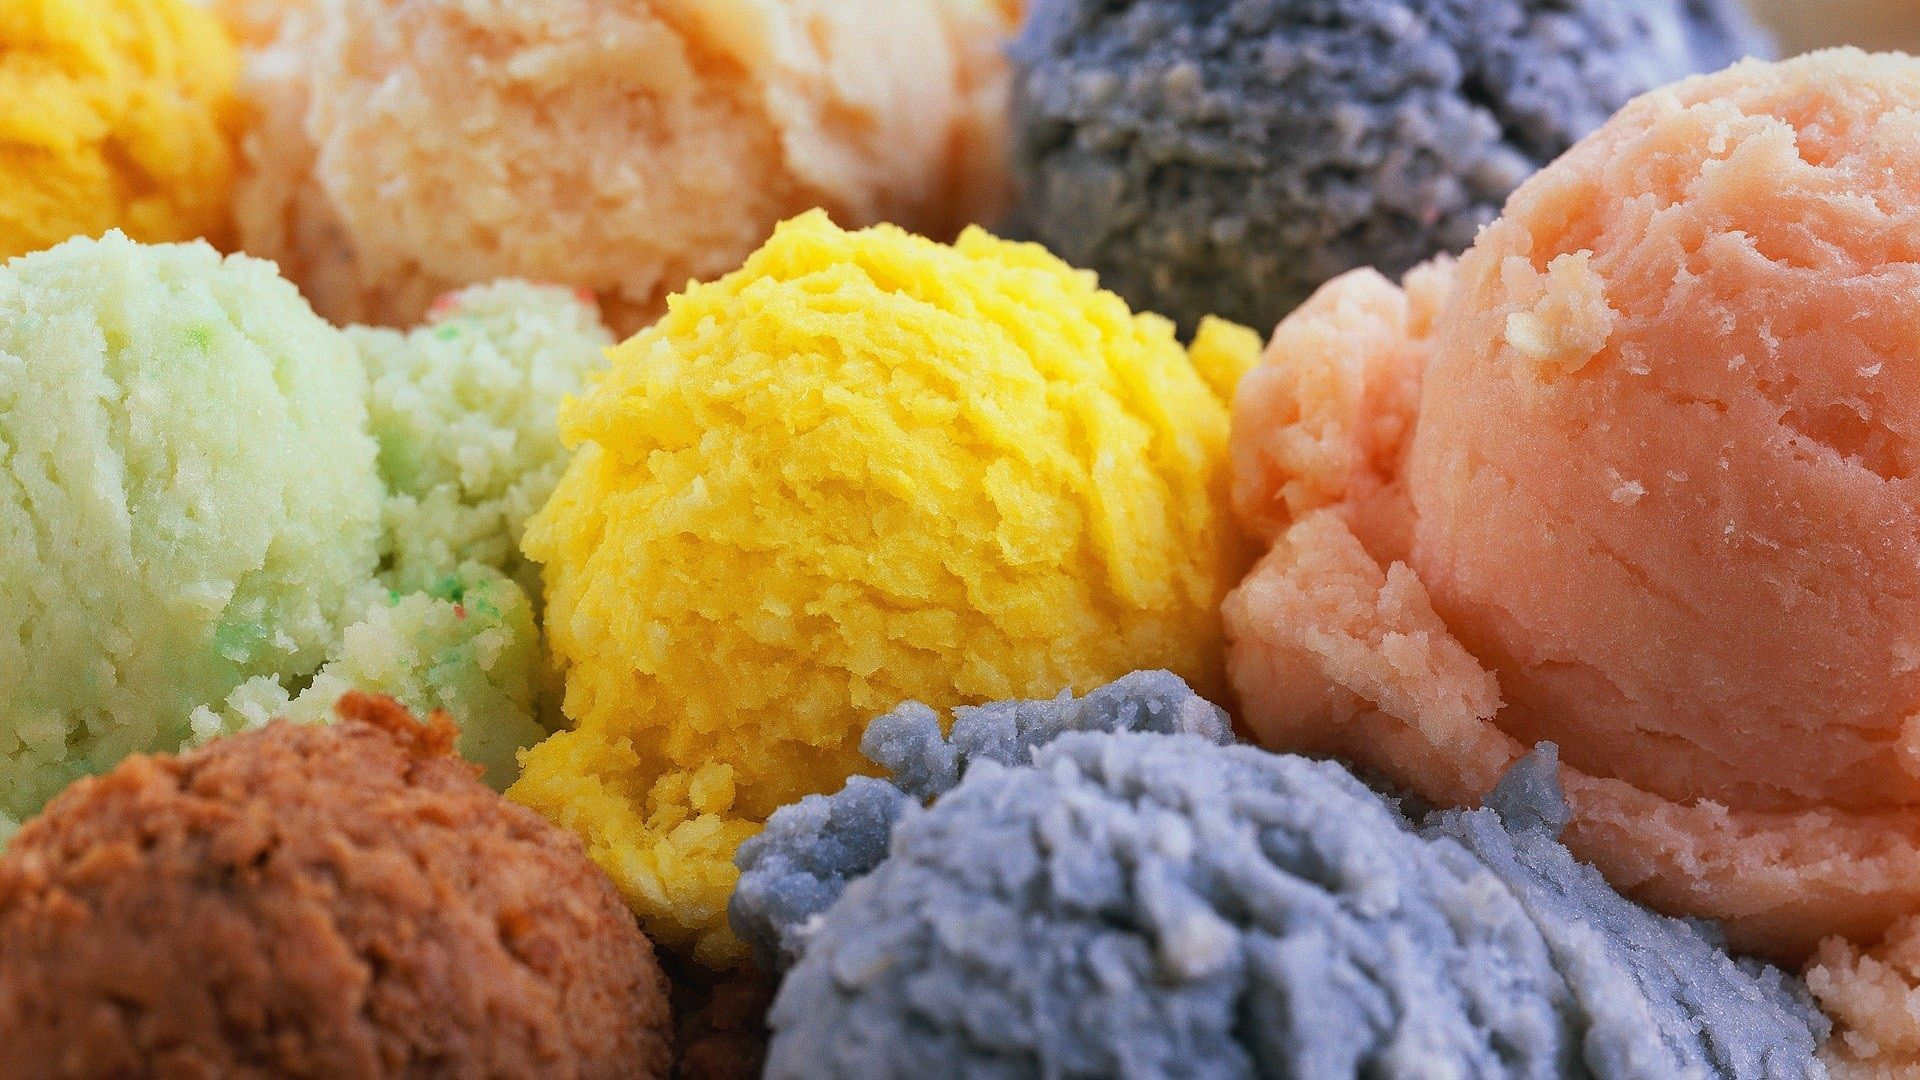 colorful ice cream | rate select rating give colorful ice cream 1 5 give colorful ice